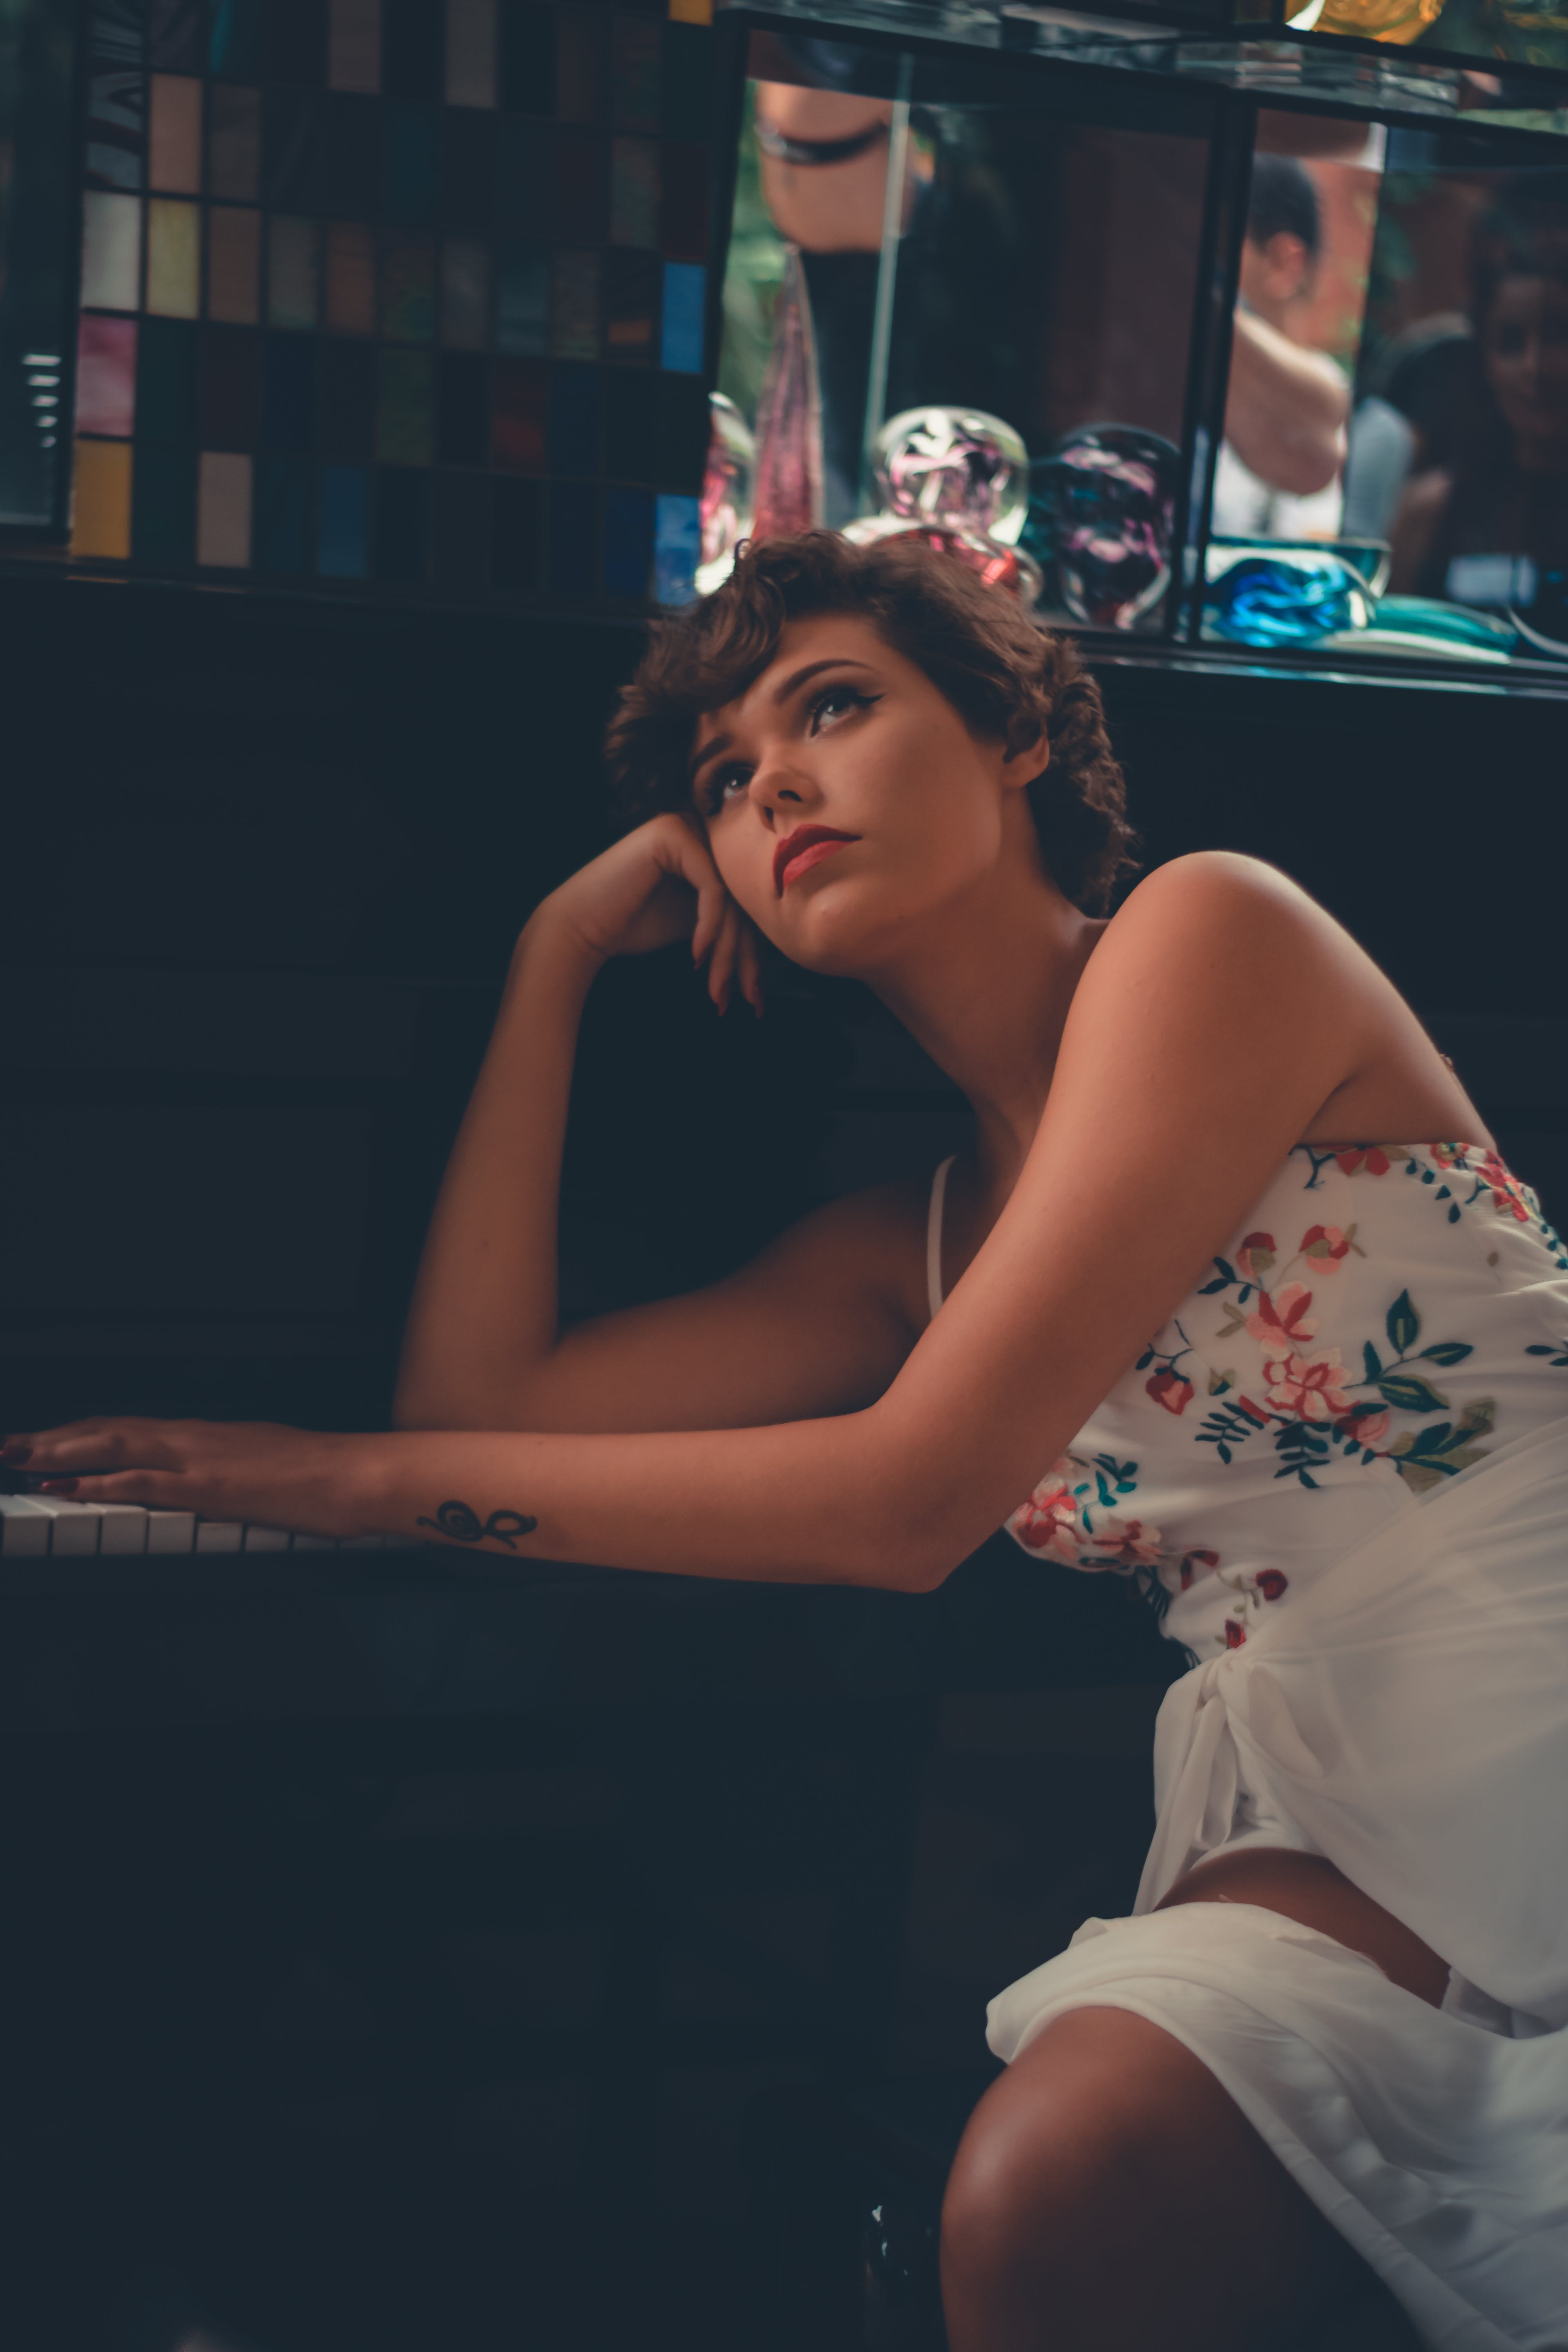 Woman Leaning and Posing on Piano